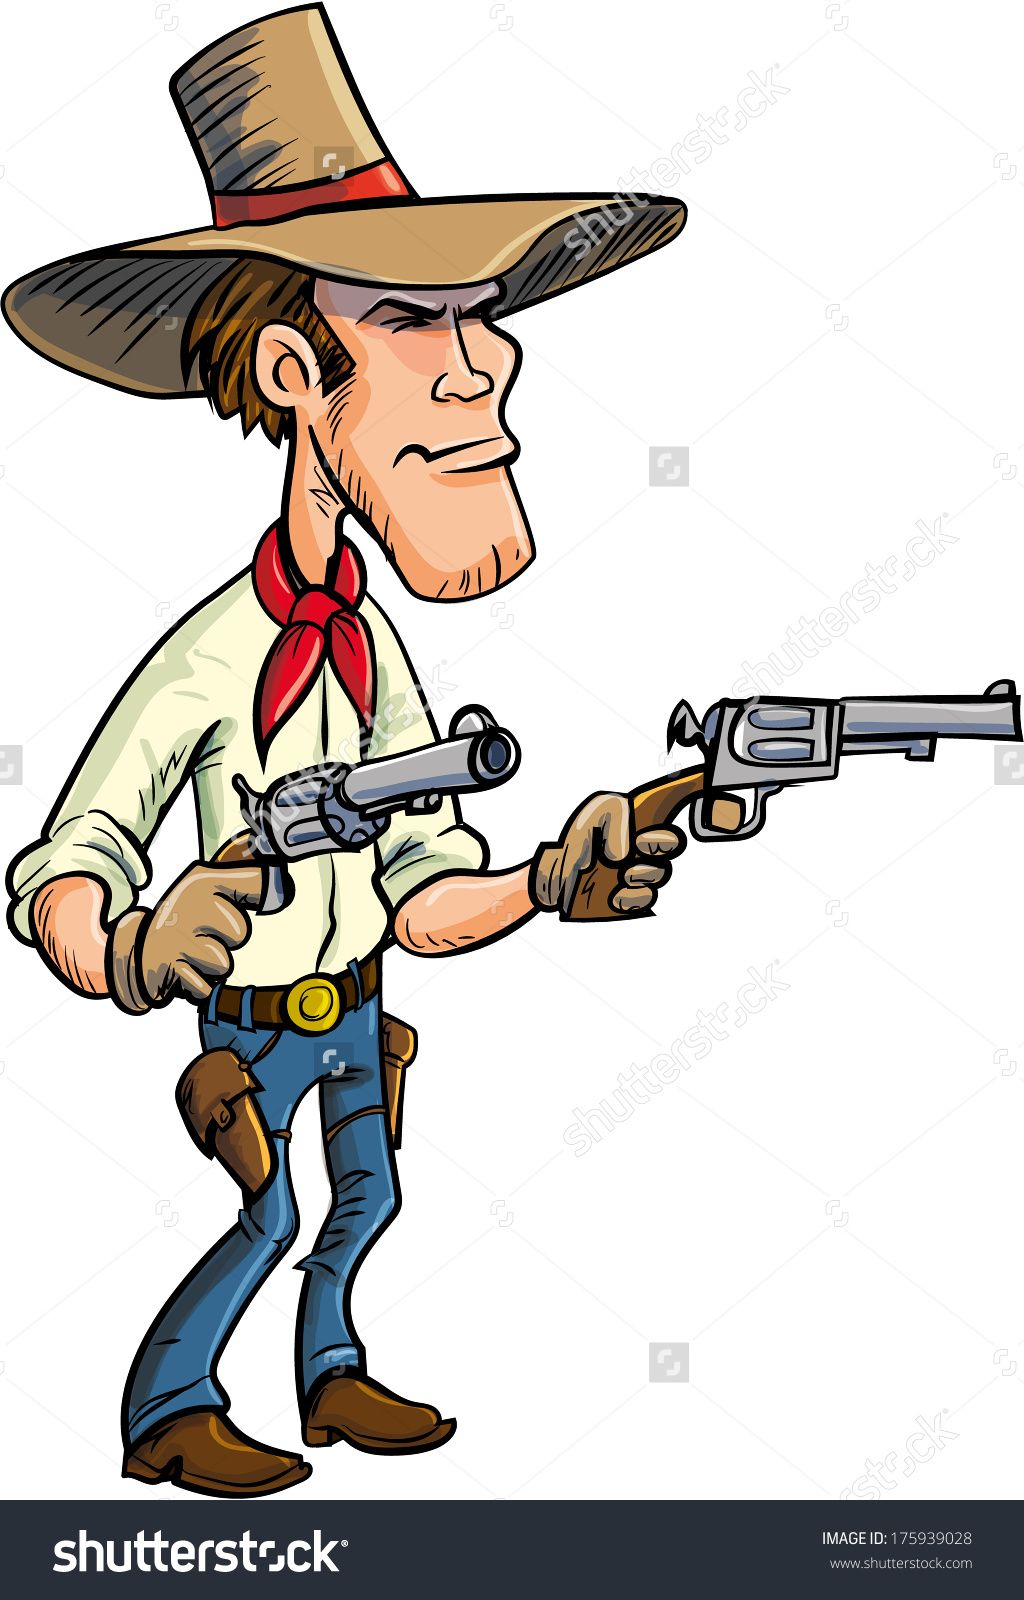 how to draw a man with a gun